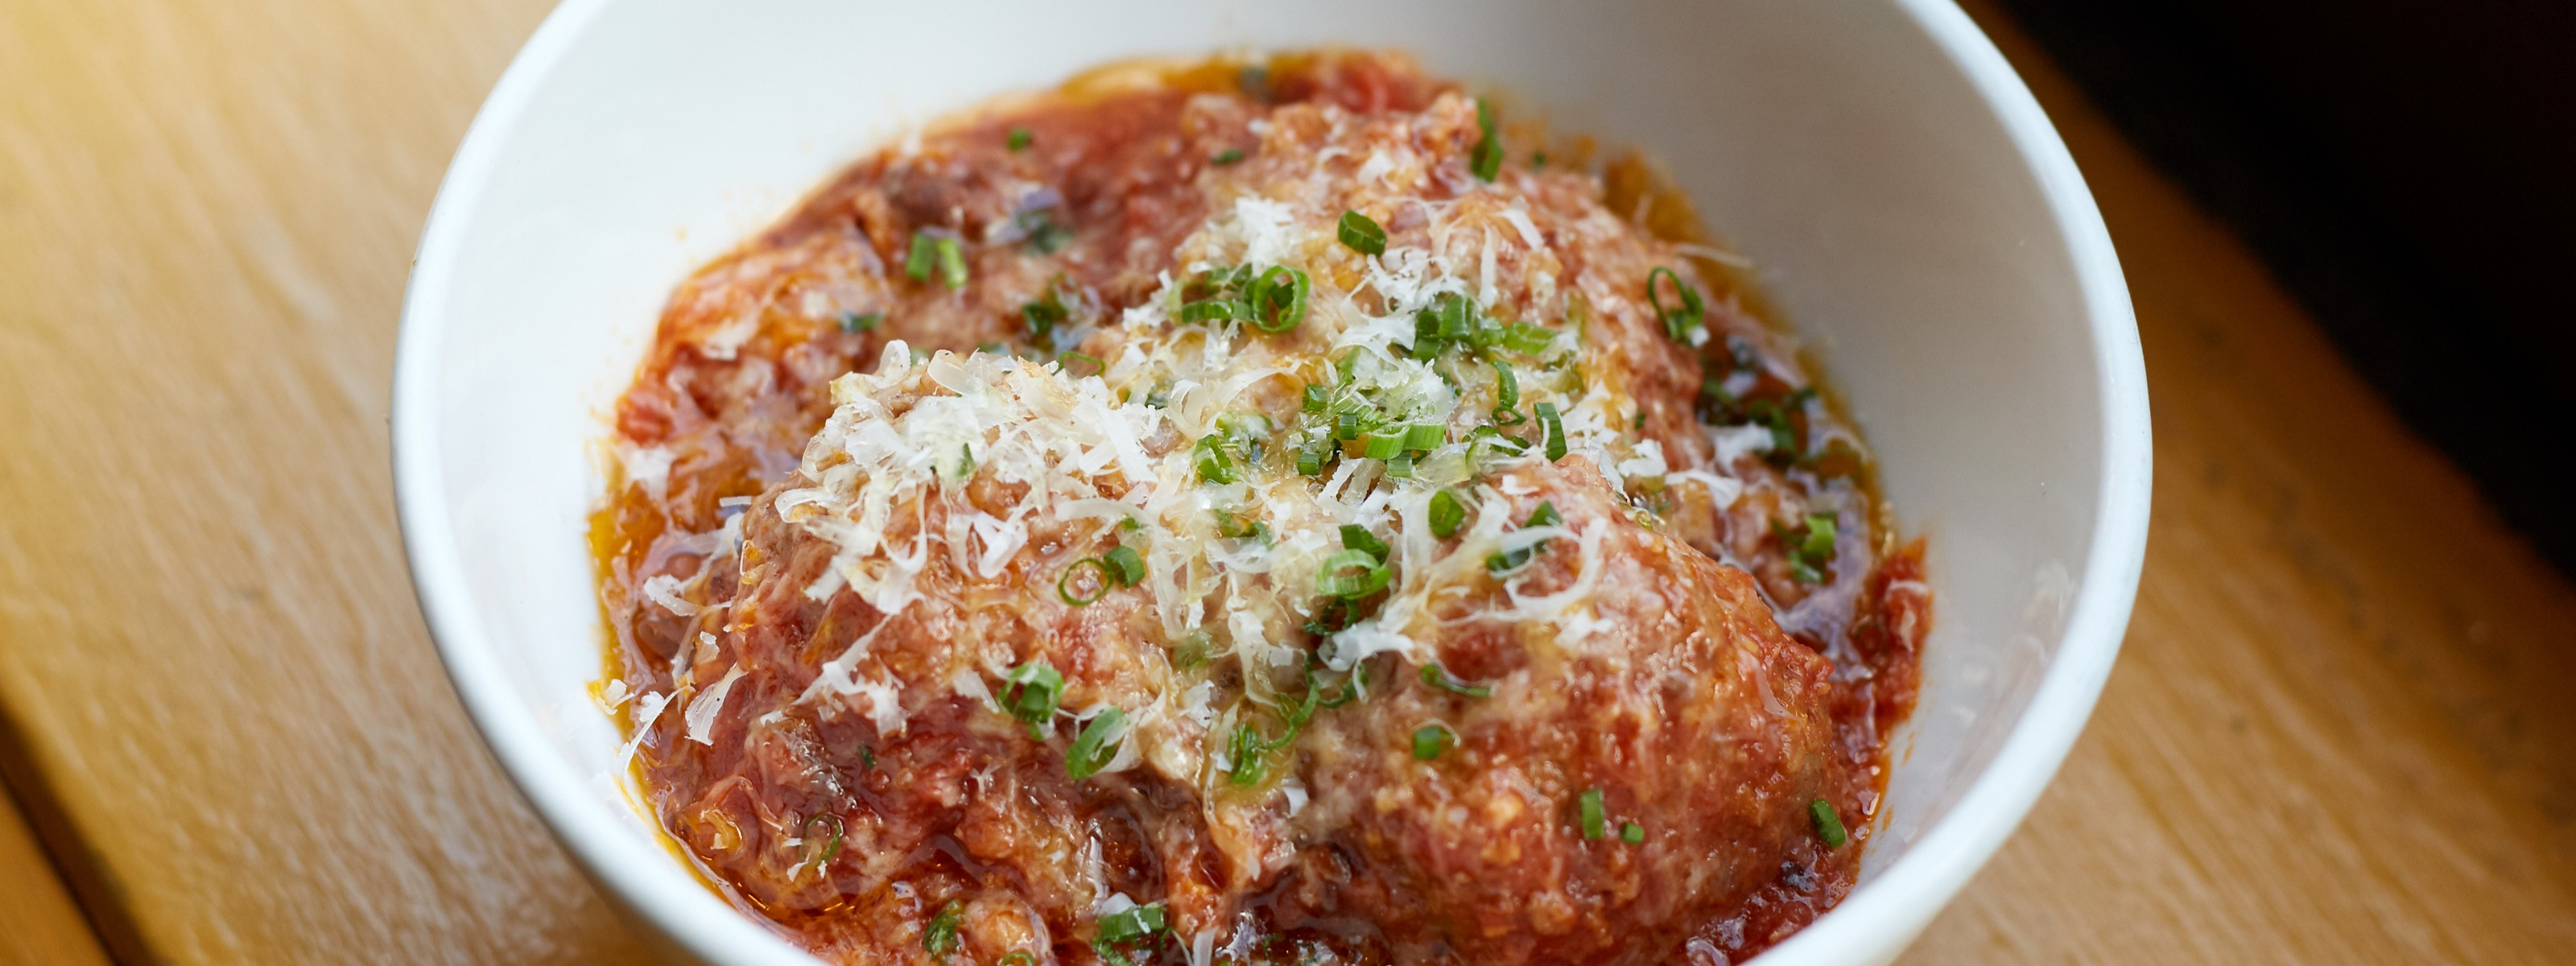 Where To Get Italian Takeout And Delivery In Boston - Boston - The Infatuation